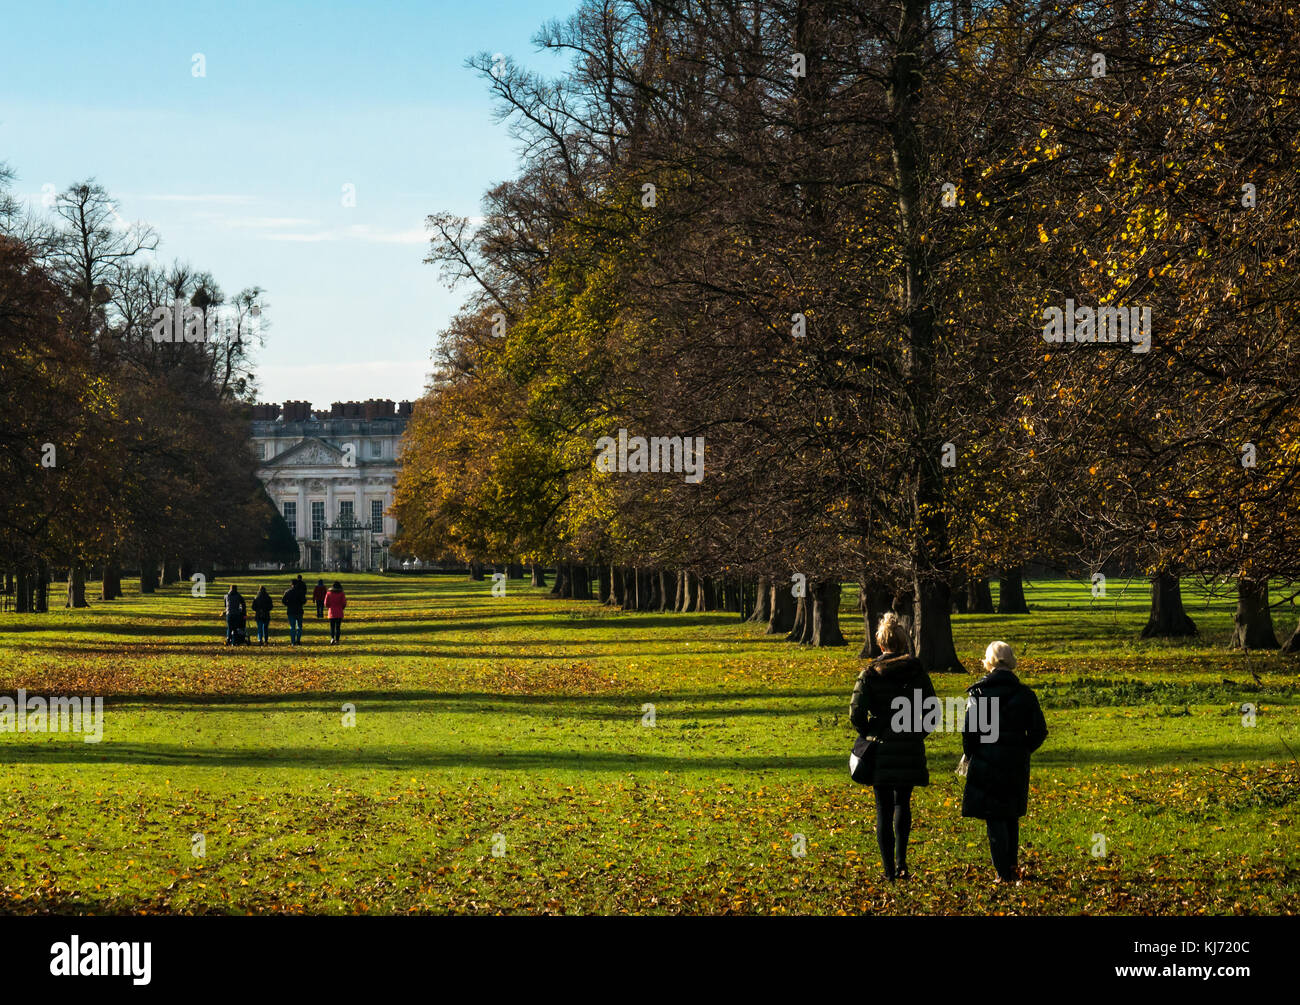 people-two-women-in-foreground-walking-t